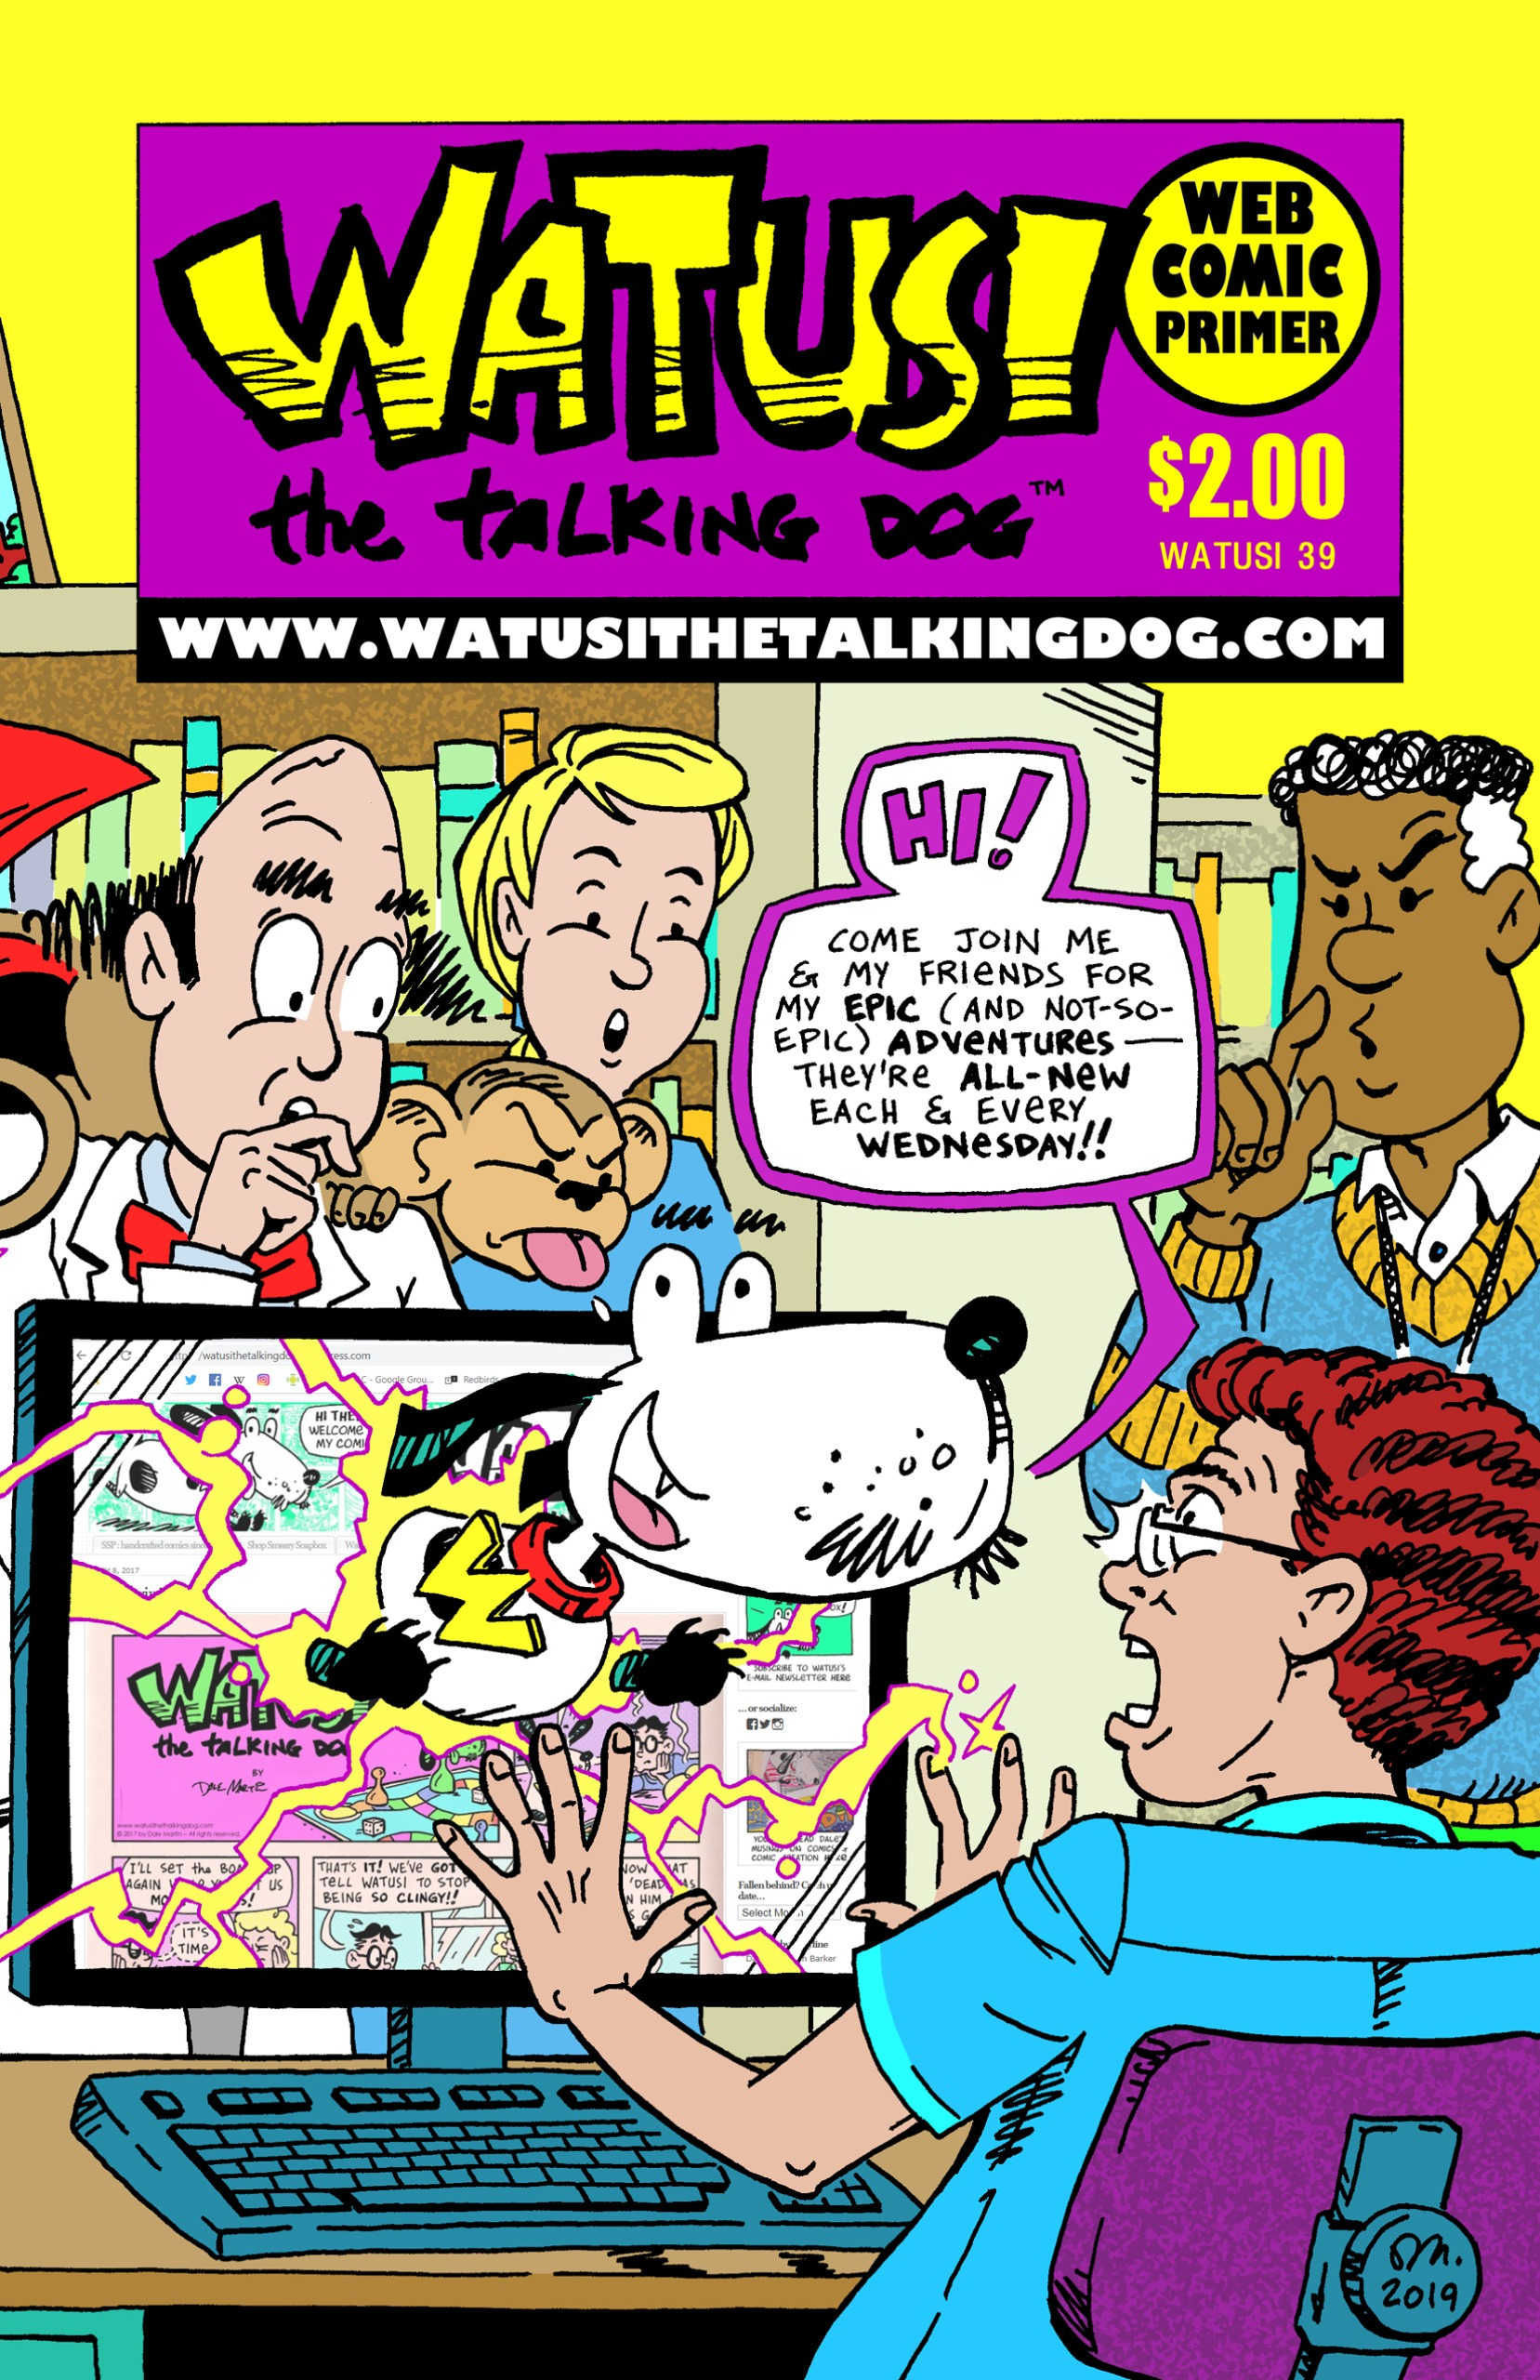 Watusi the Talking Dog No. 39 [.pdf ed.]